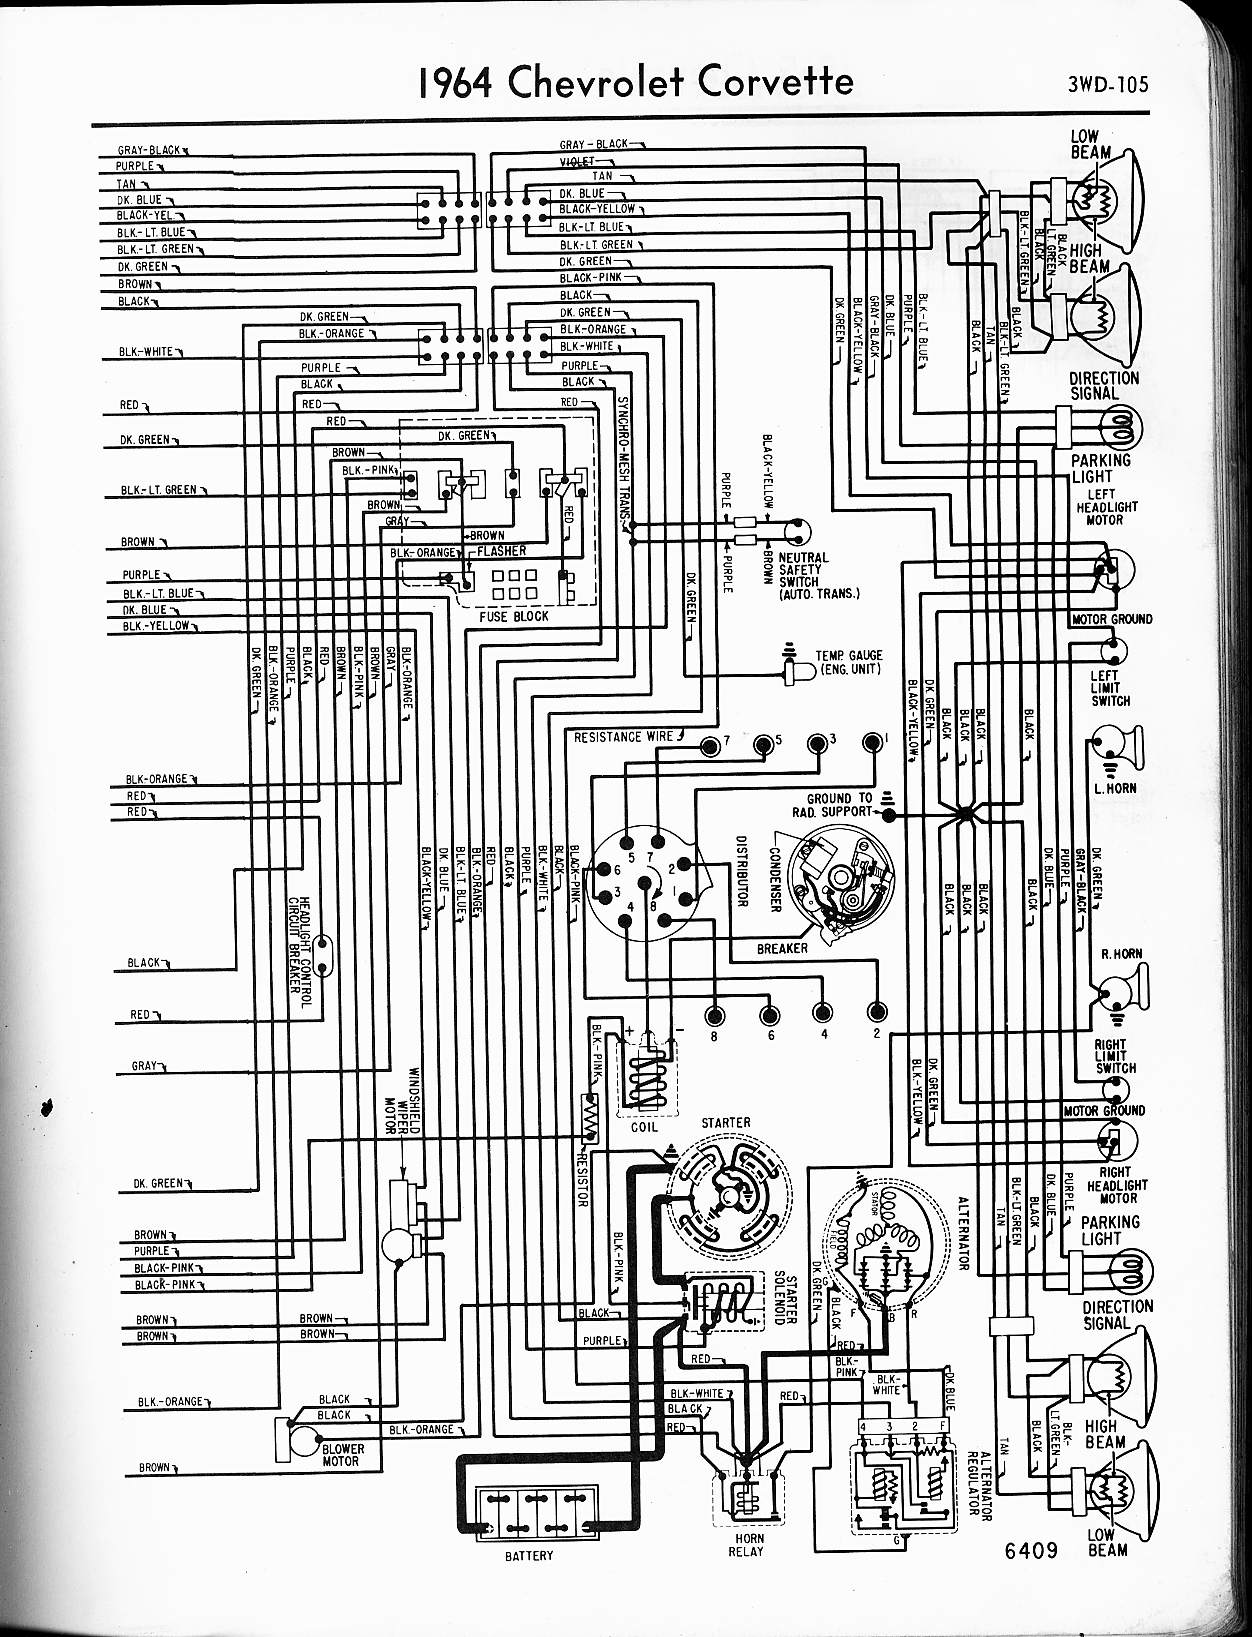 MWireChev64_3WD 105 57 65 chevy wiring diagrams 1965 c10 wiring diagram at mifinder.co